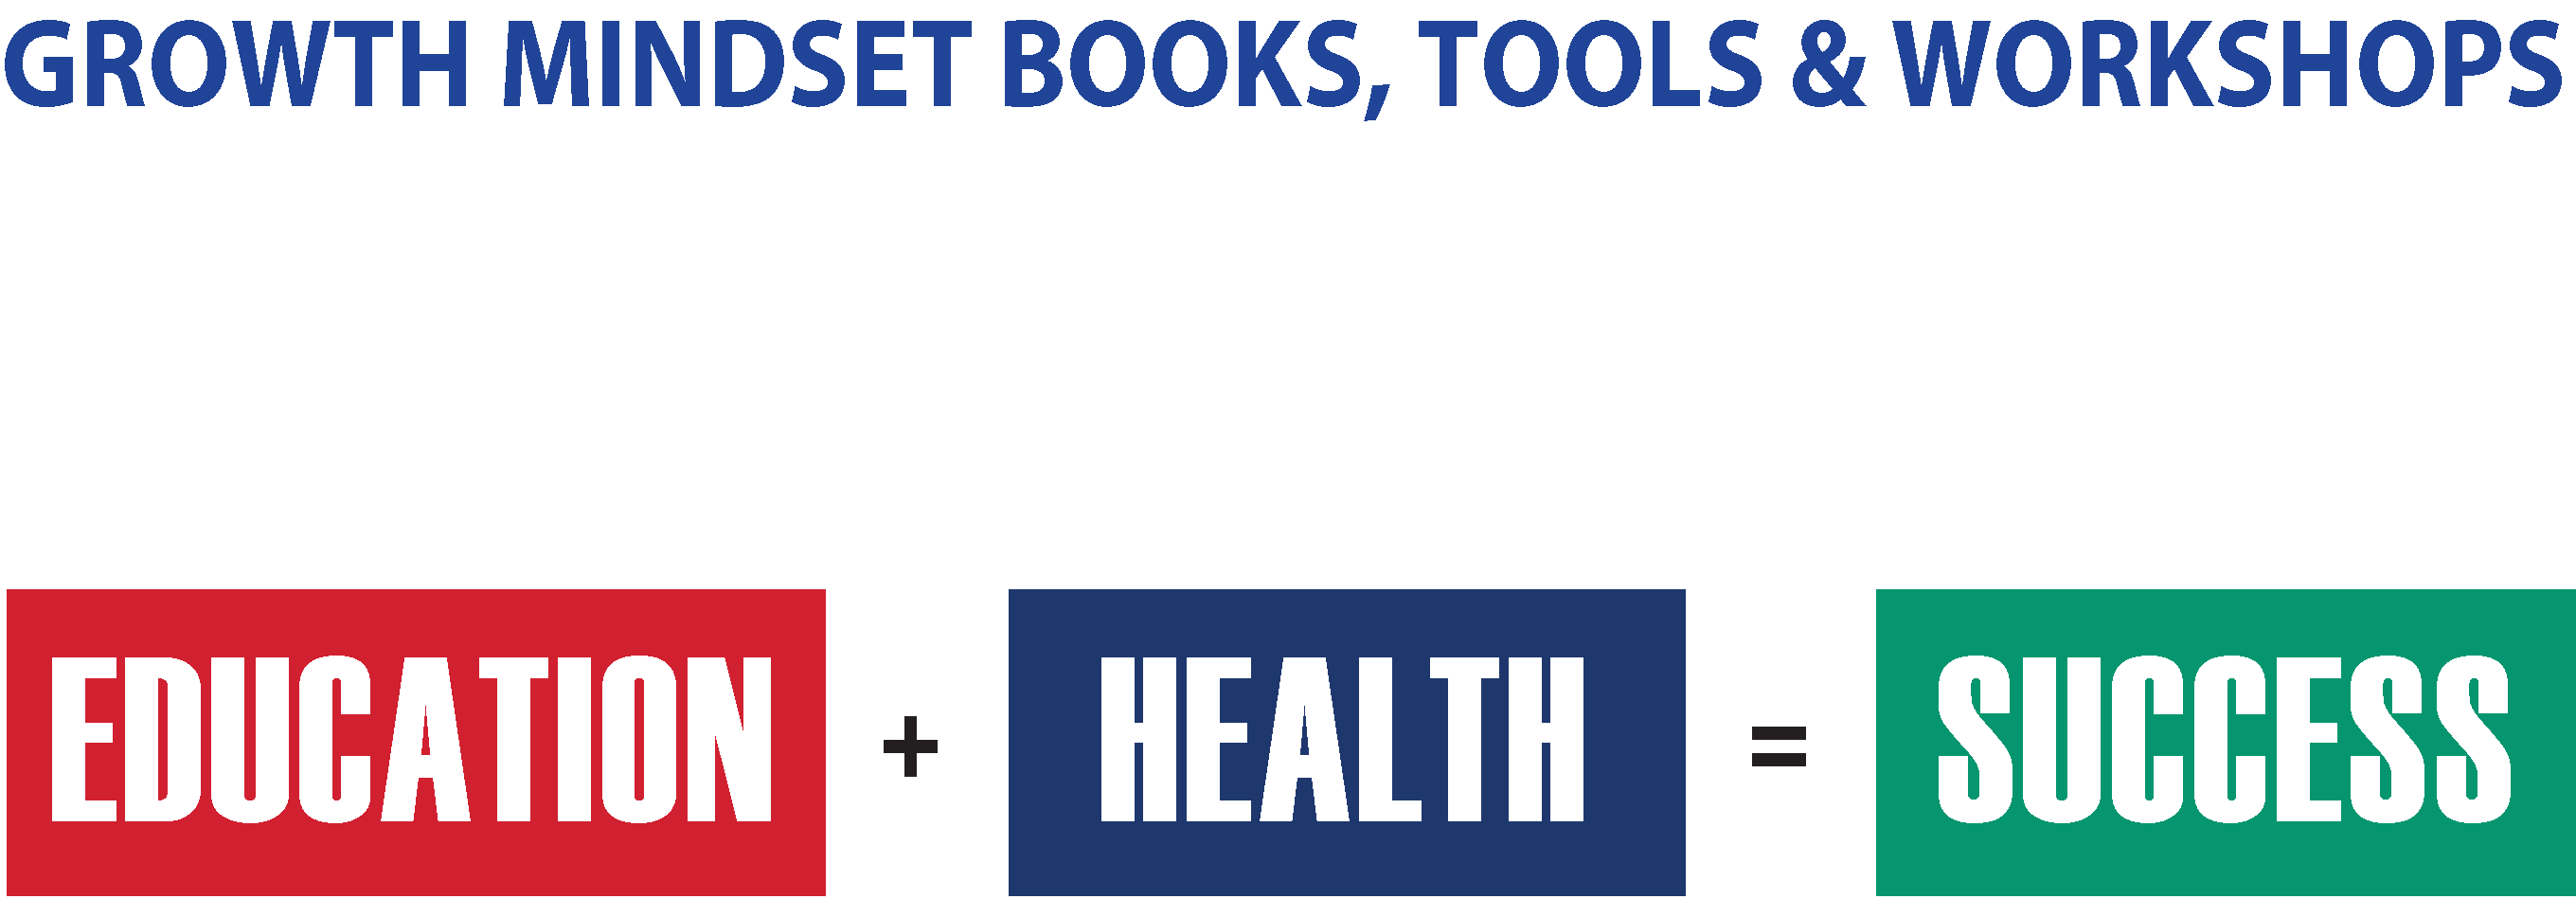 Growth Mindset Books, Tools and Workshops Improving Student, Mentee and Youth Life Outcomes in Education and Health for Success in Life By www.Realizing Dreams.us